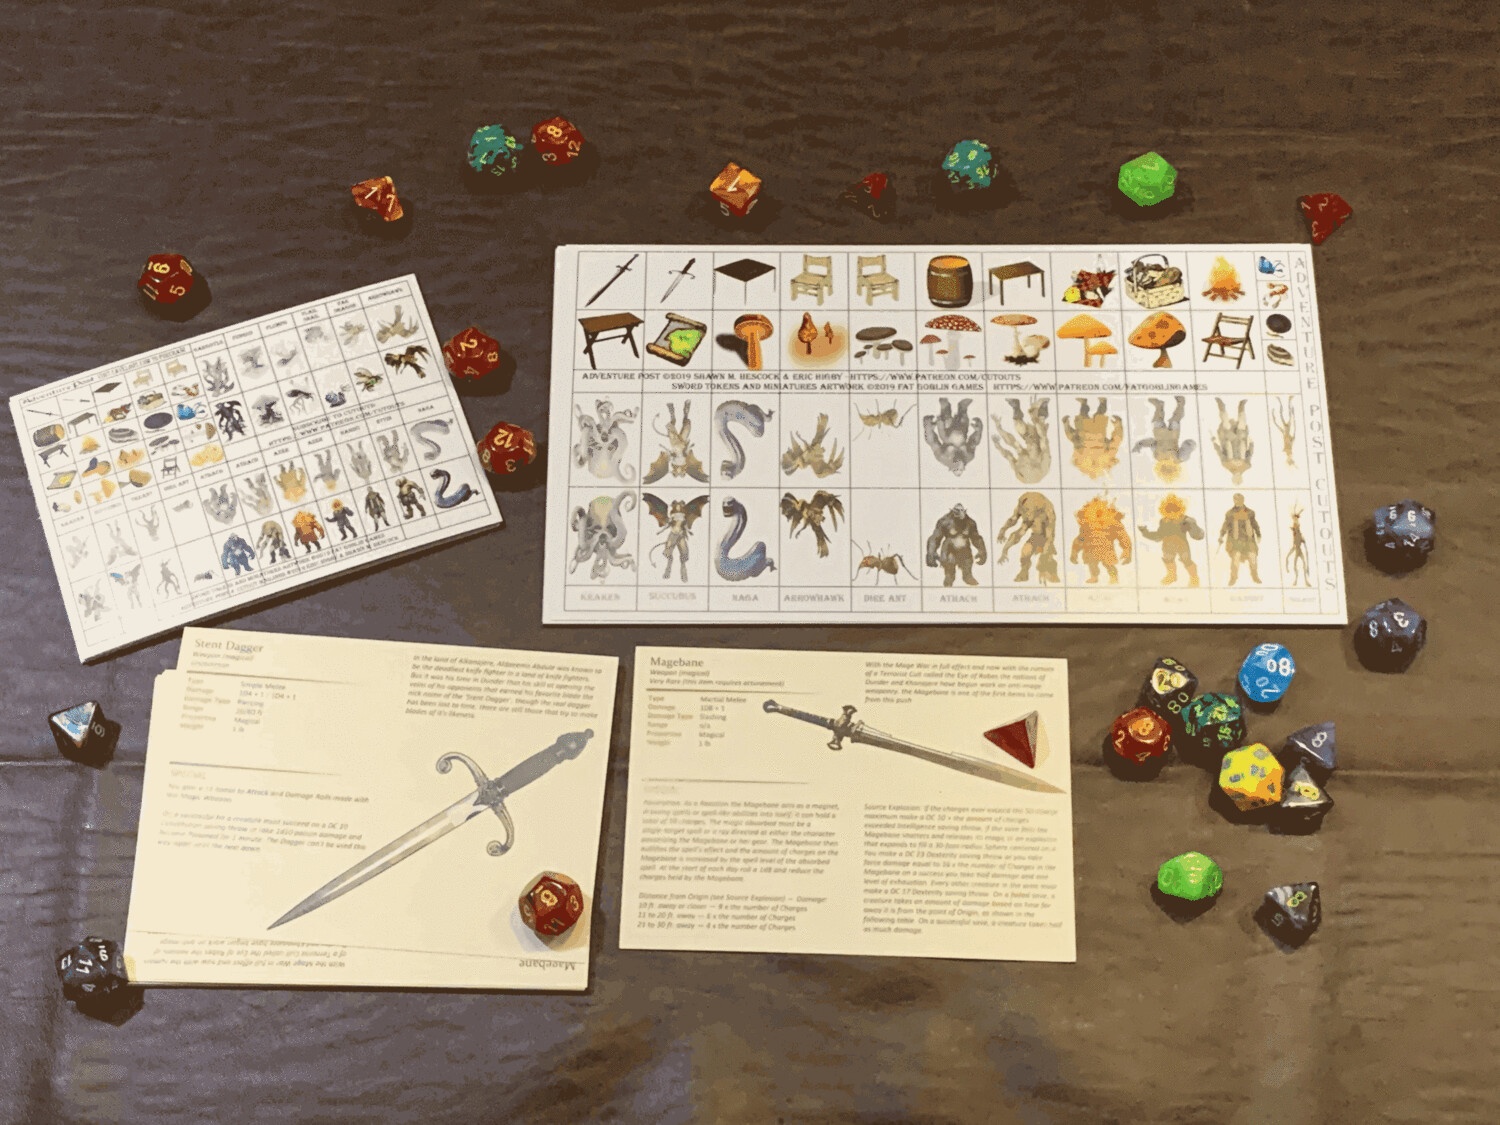 Adventure Post - Cutout Mailings #8 - 11-2019